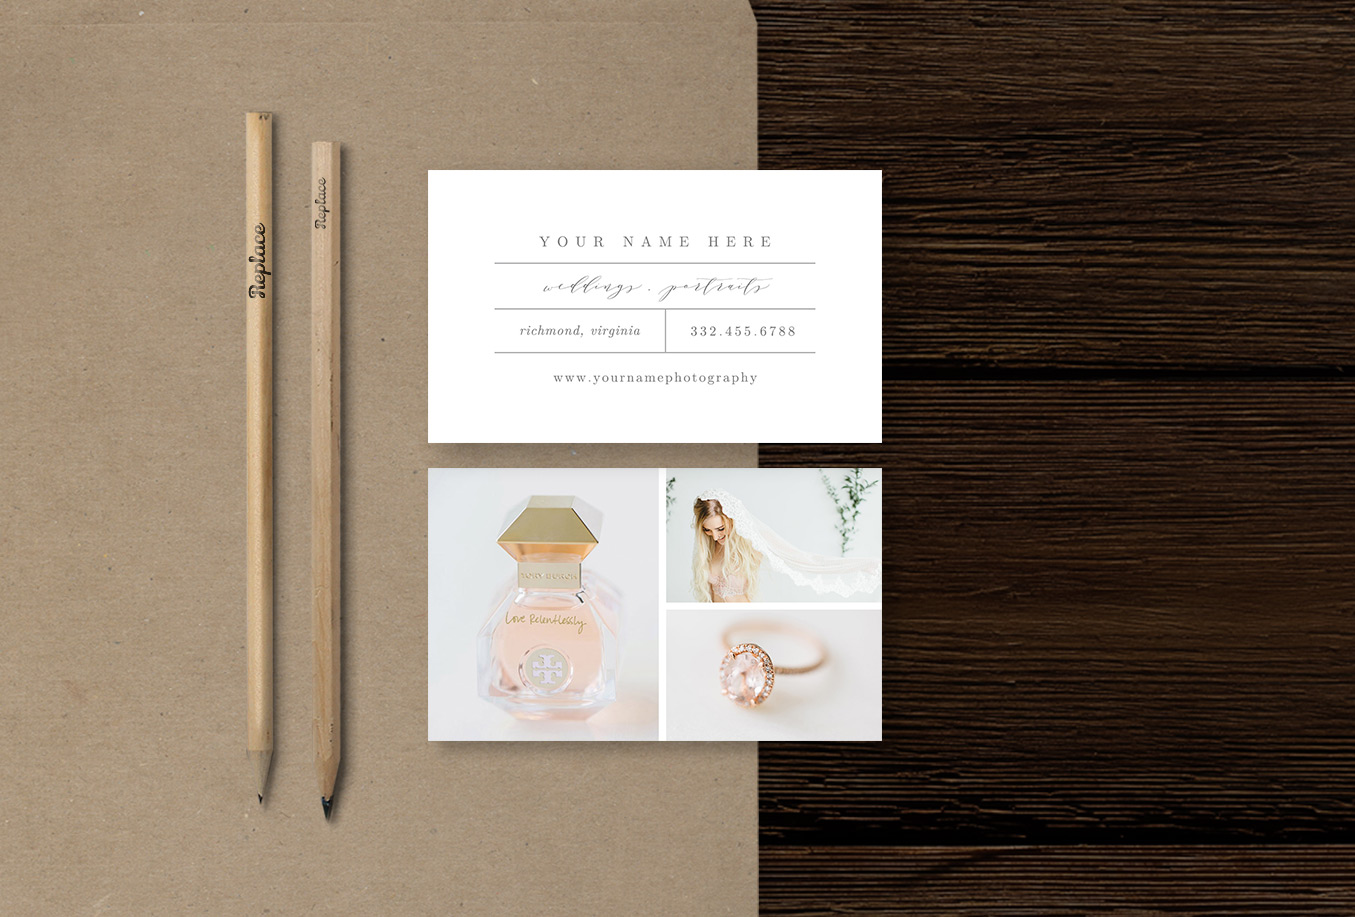 Photographer business card inspiration | designbybittersweet | photography business cards